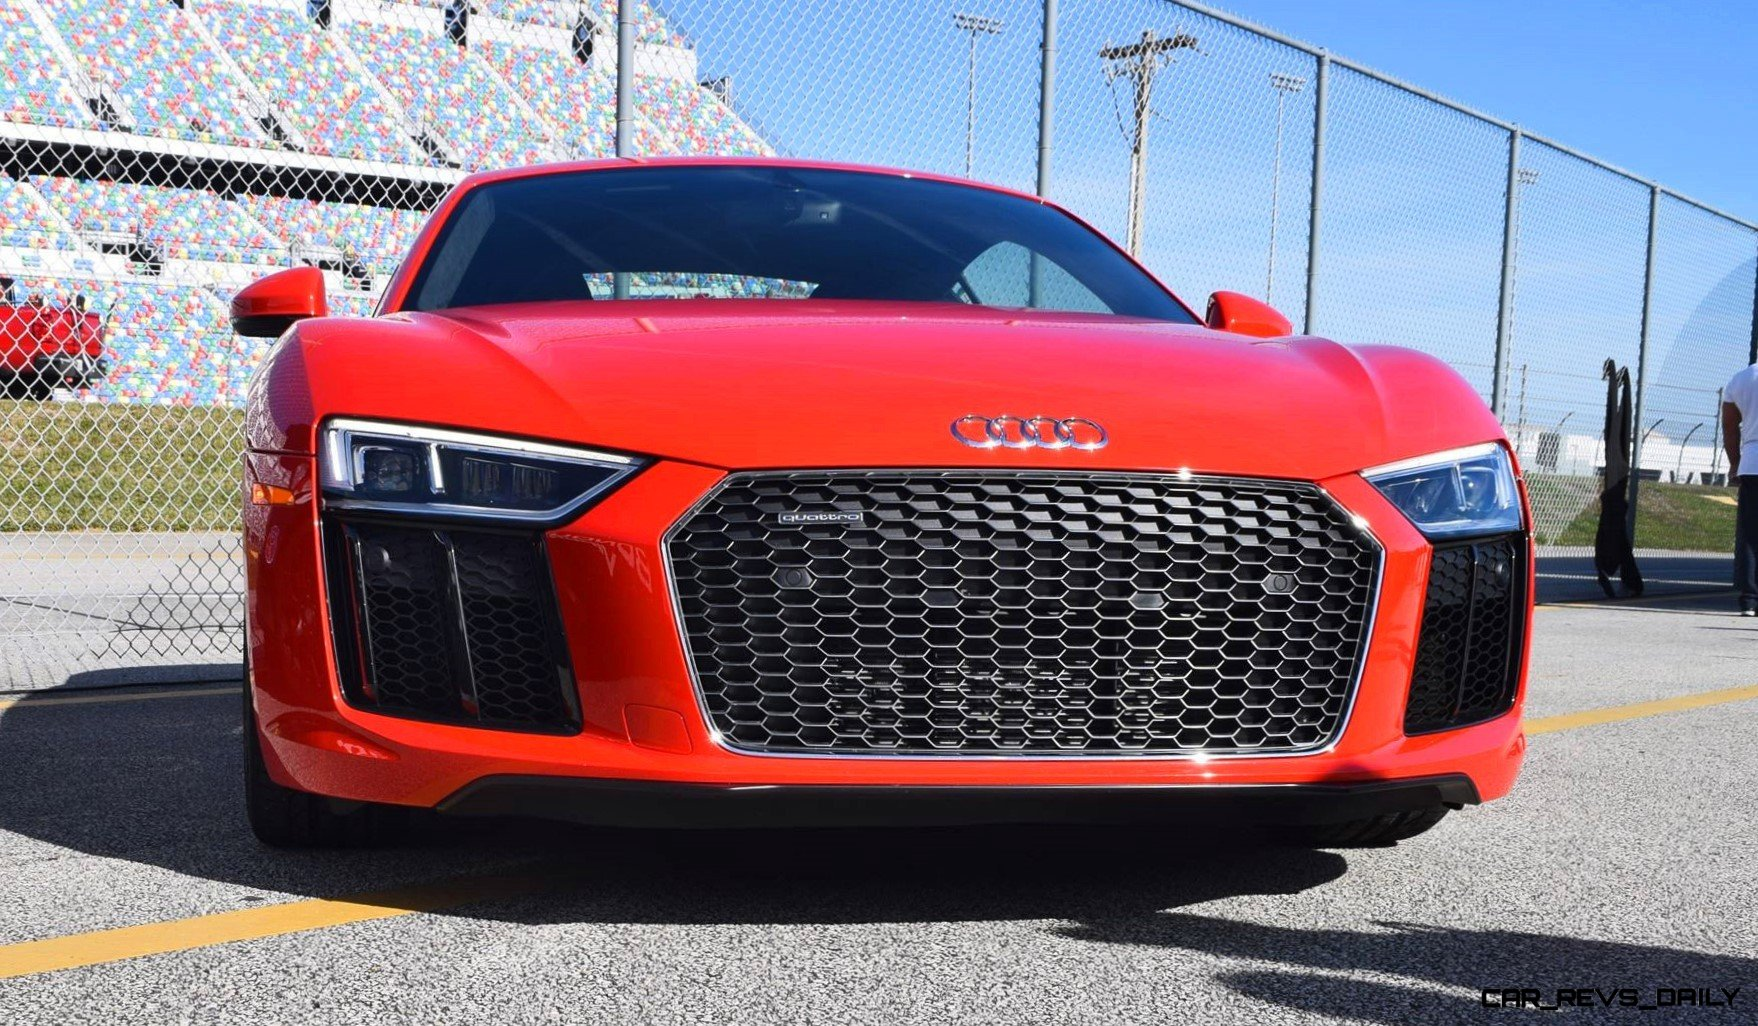 2017 Audi R8 V10 Usa Pricing Colors And Spec Secrets 40 Photo Flyaround Car Revs Daily Com